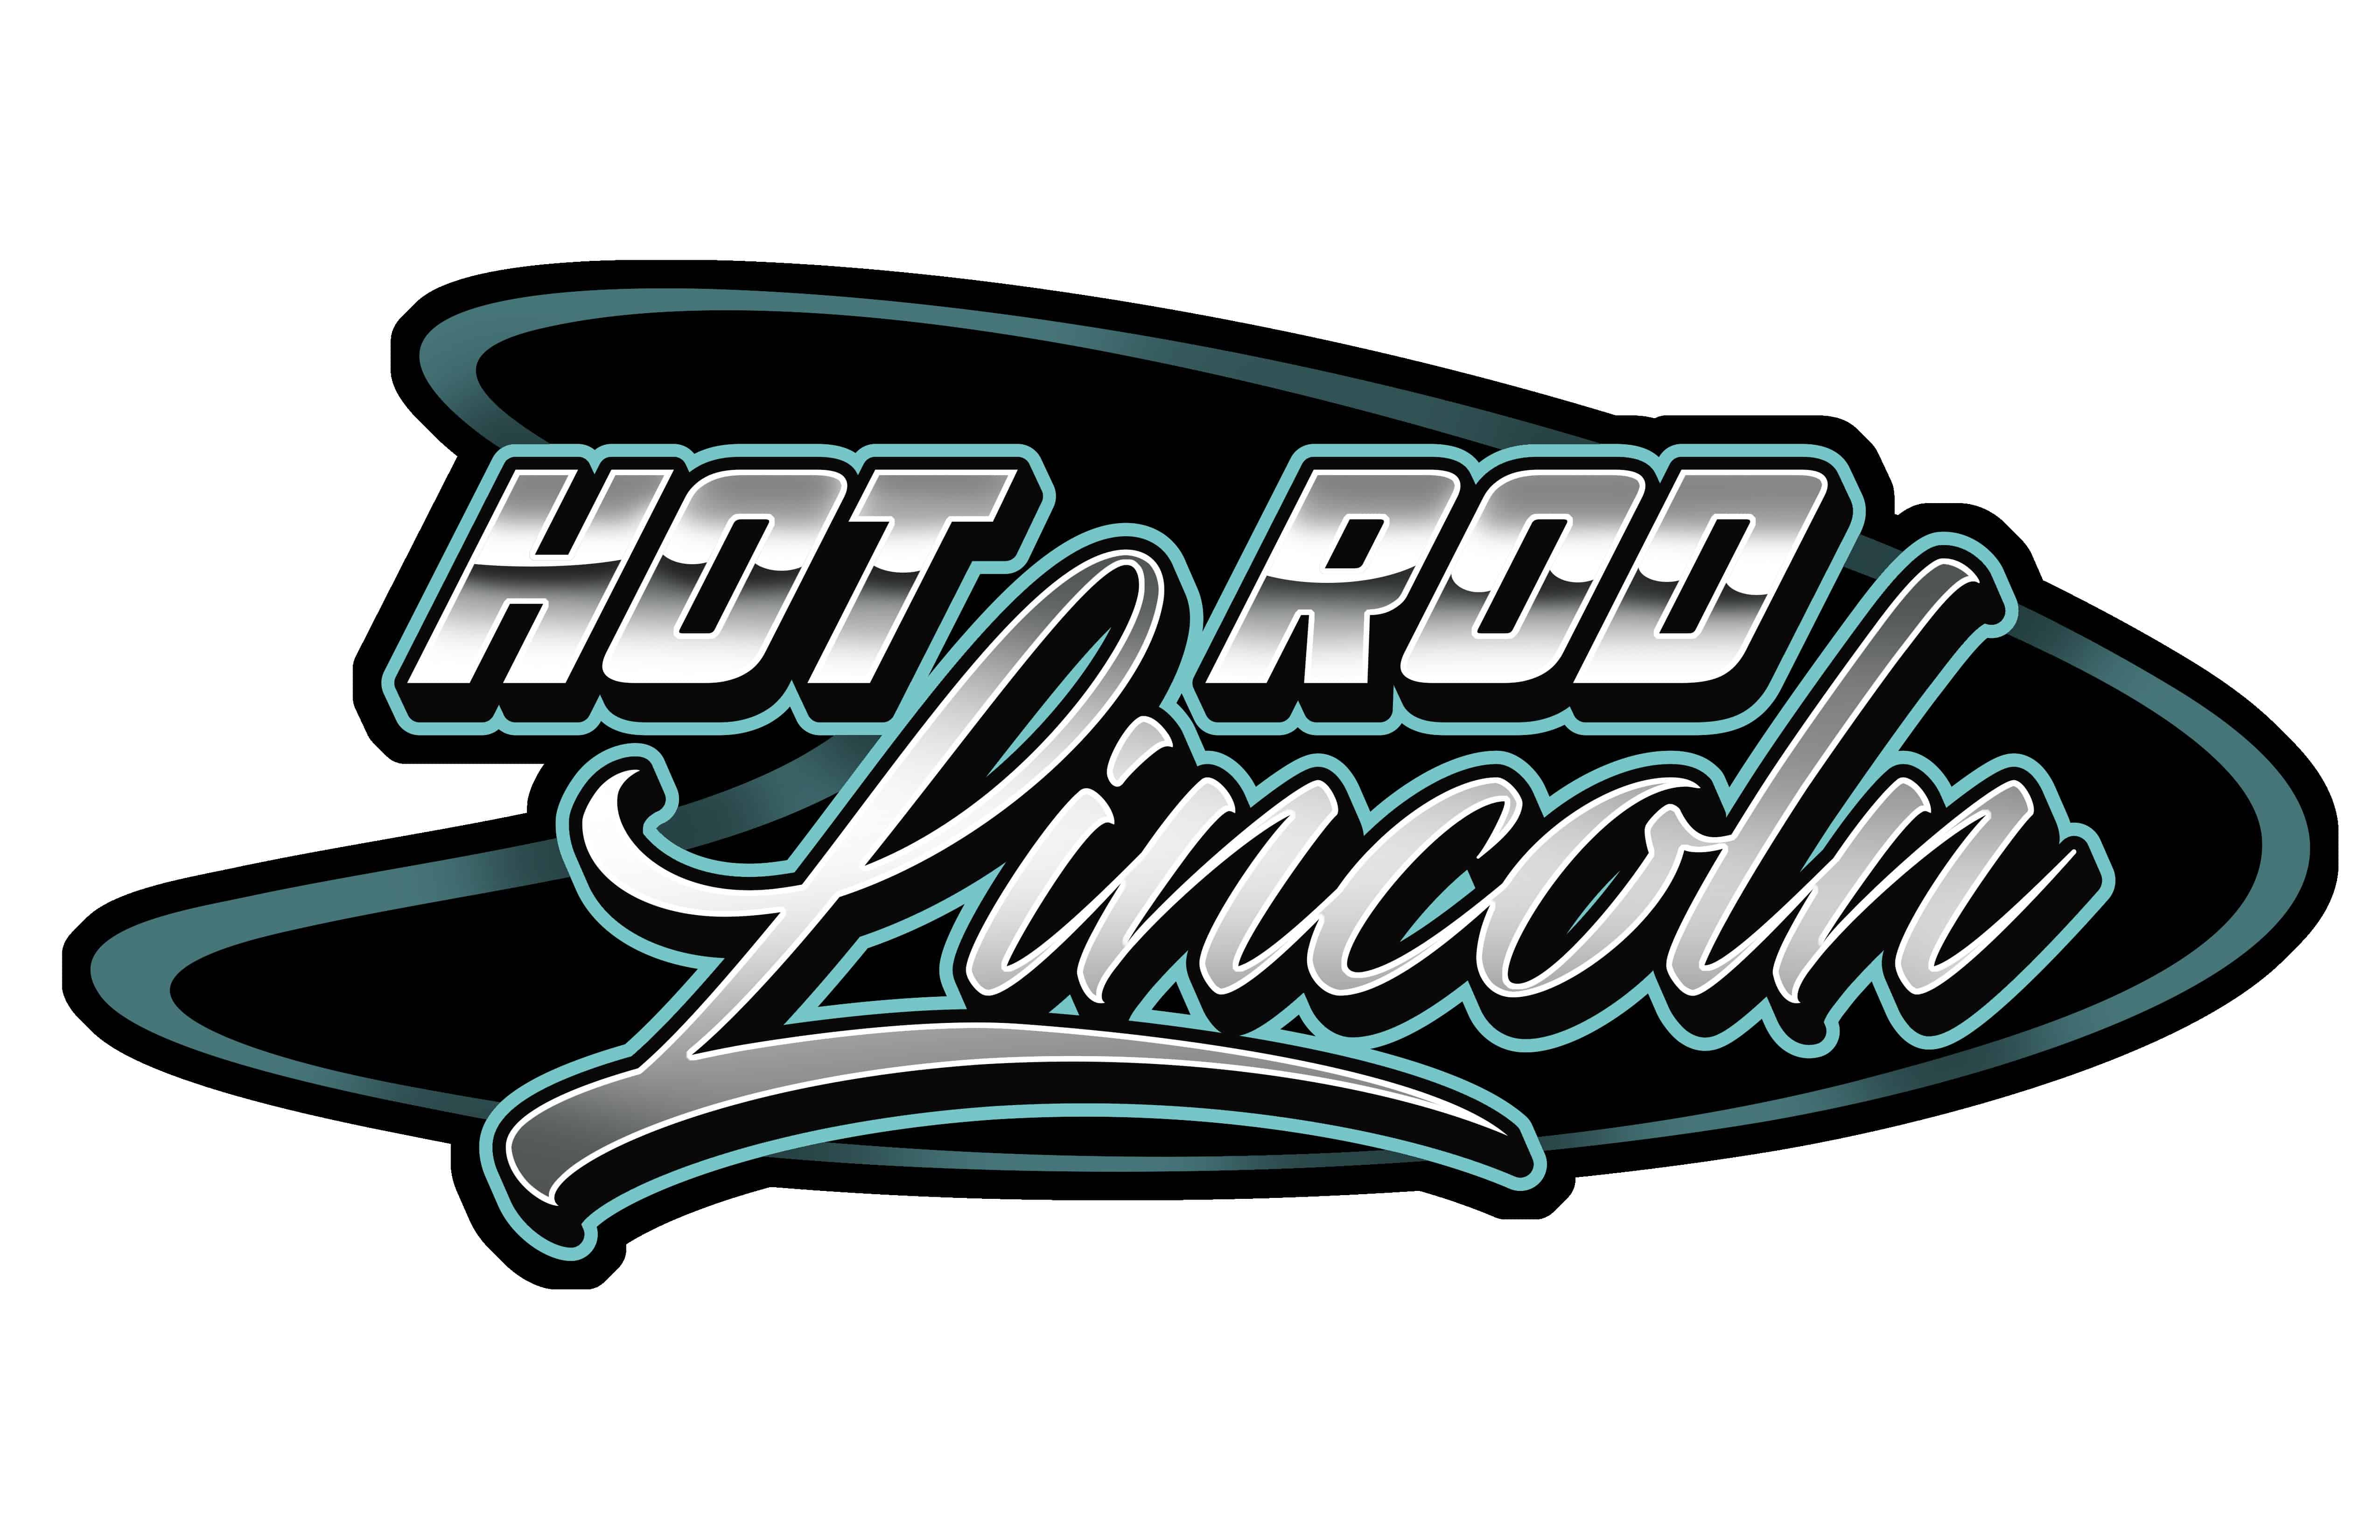 The band Hot Rod Lincoln logo